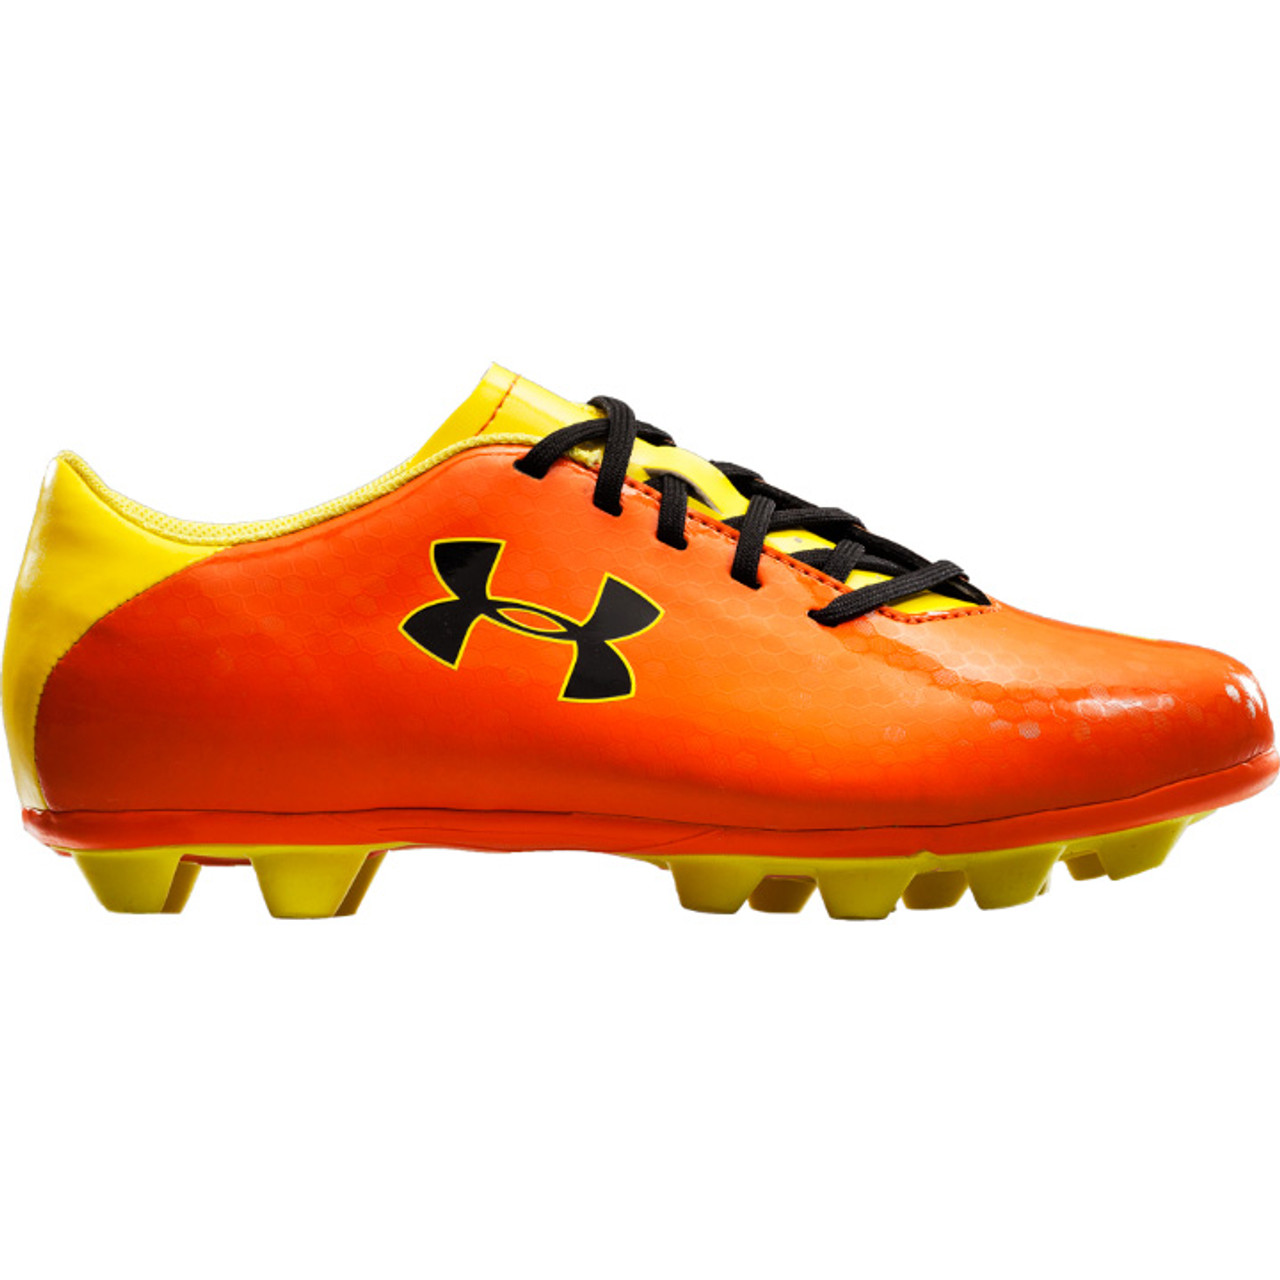 2a94f23cf Boy's Under Armour Blur III HG Youth Soccer Cleats Vivid/Sunbleached/Black  - Sieverts Sporting Goods